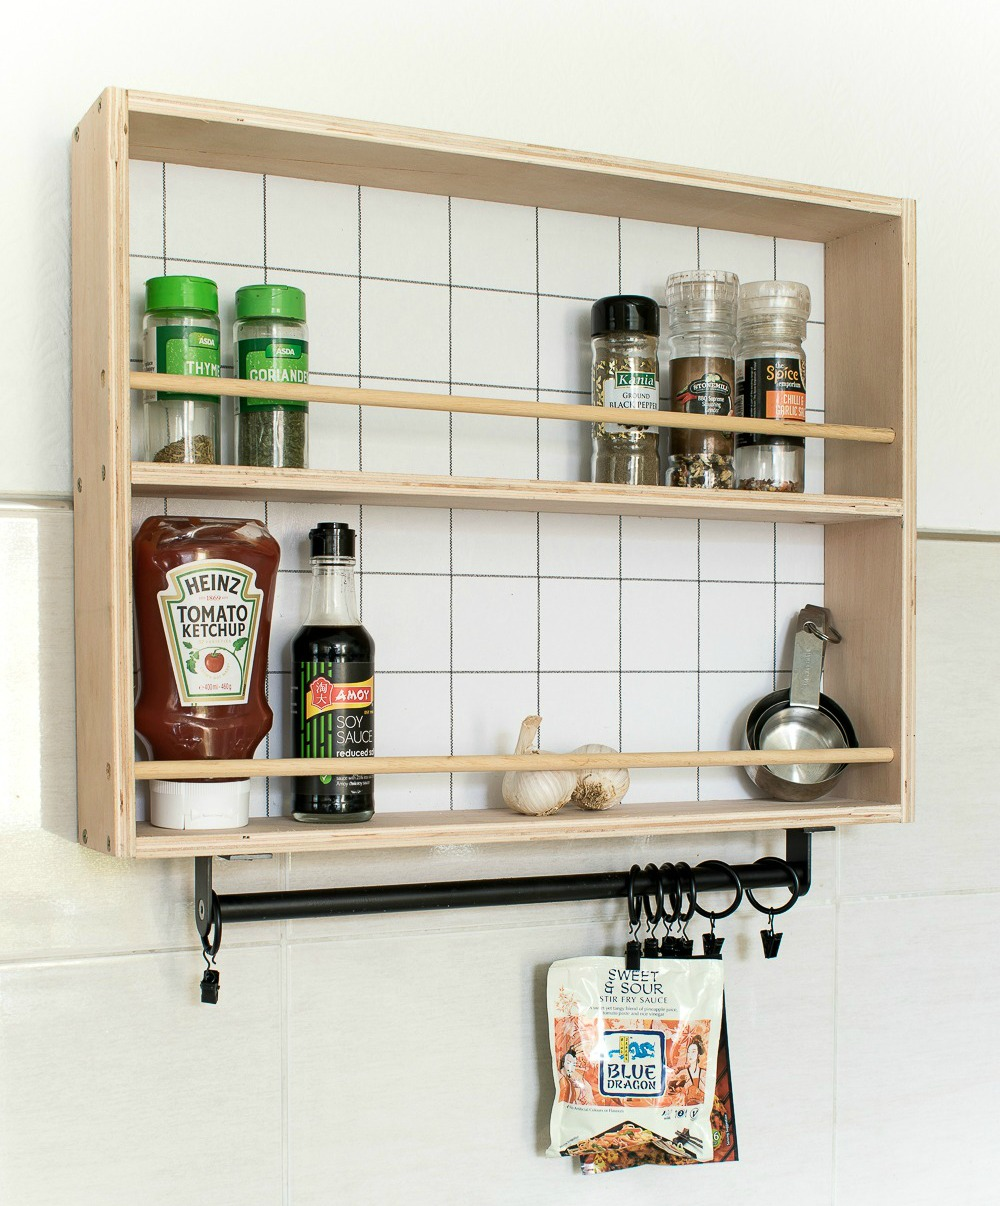 WALLPAPERED DIY HANGING SPICE RACK / GRILLO DESIGNS WWW.GRILLO-DESIGNS.COM